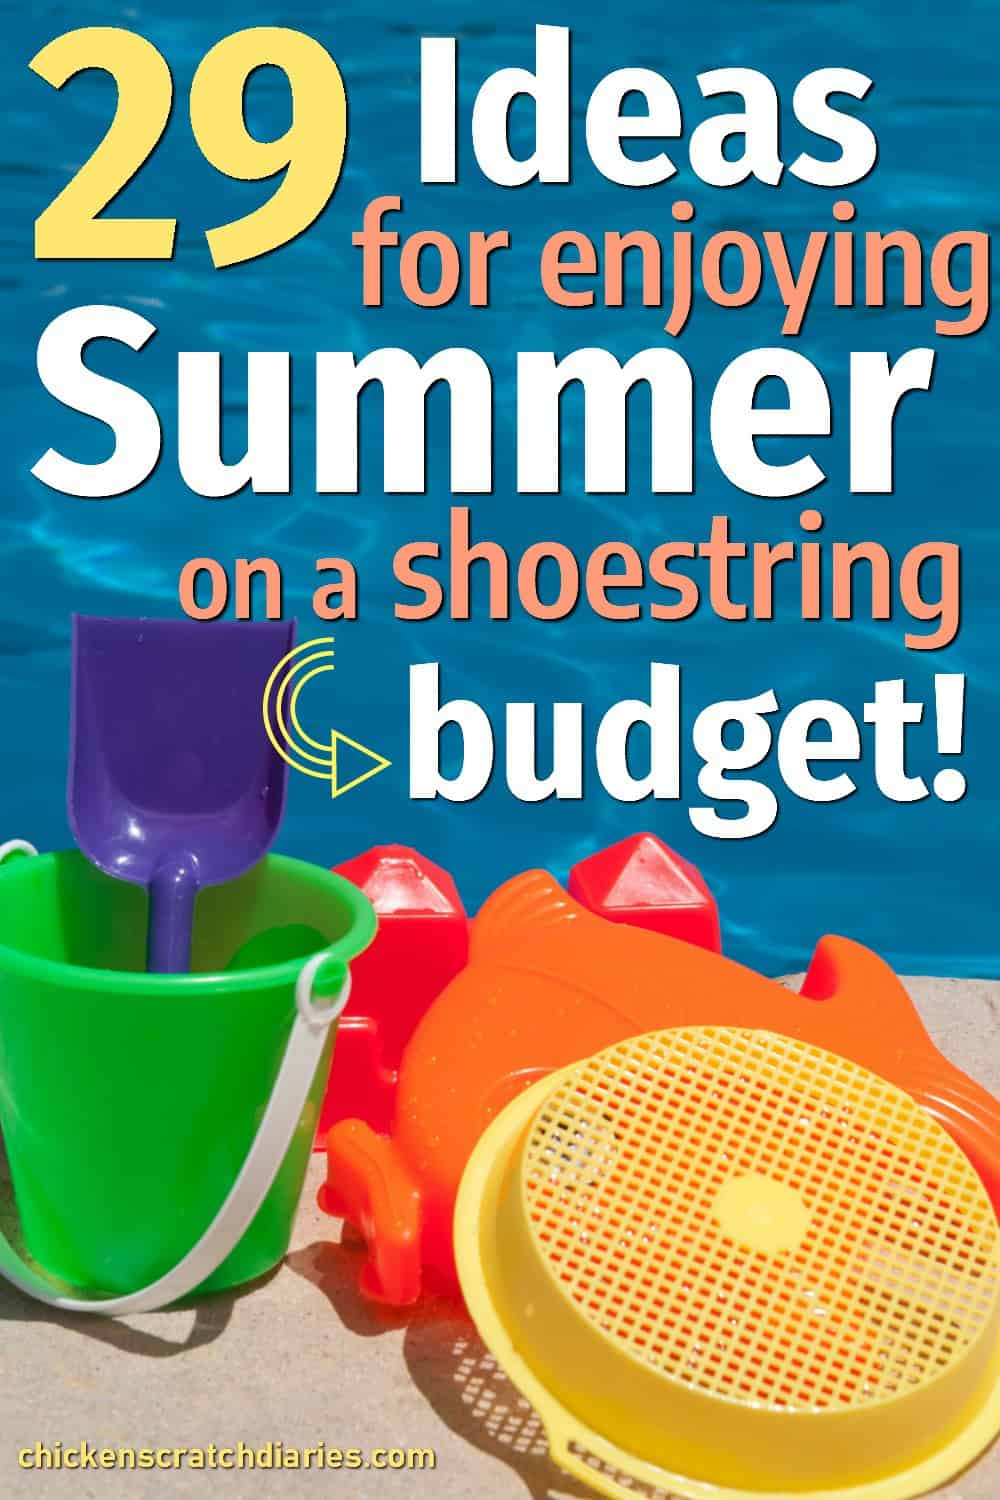 Summer activities for kids that are cheap or free- for families on a budget who still want to enjoy summer! #SummerFun #Summertime #Kids #Activities #Family